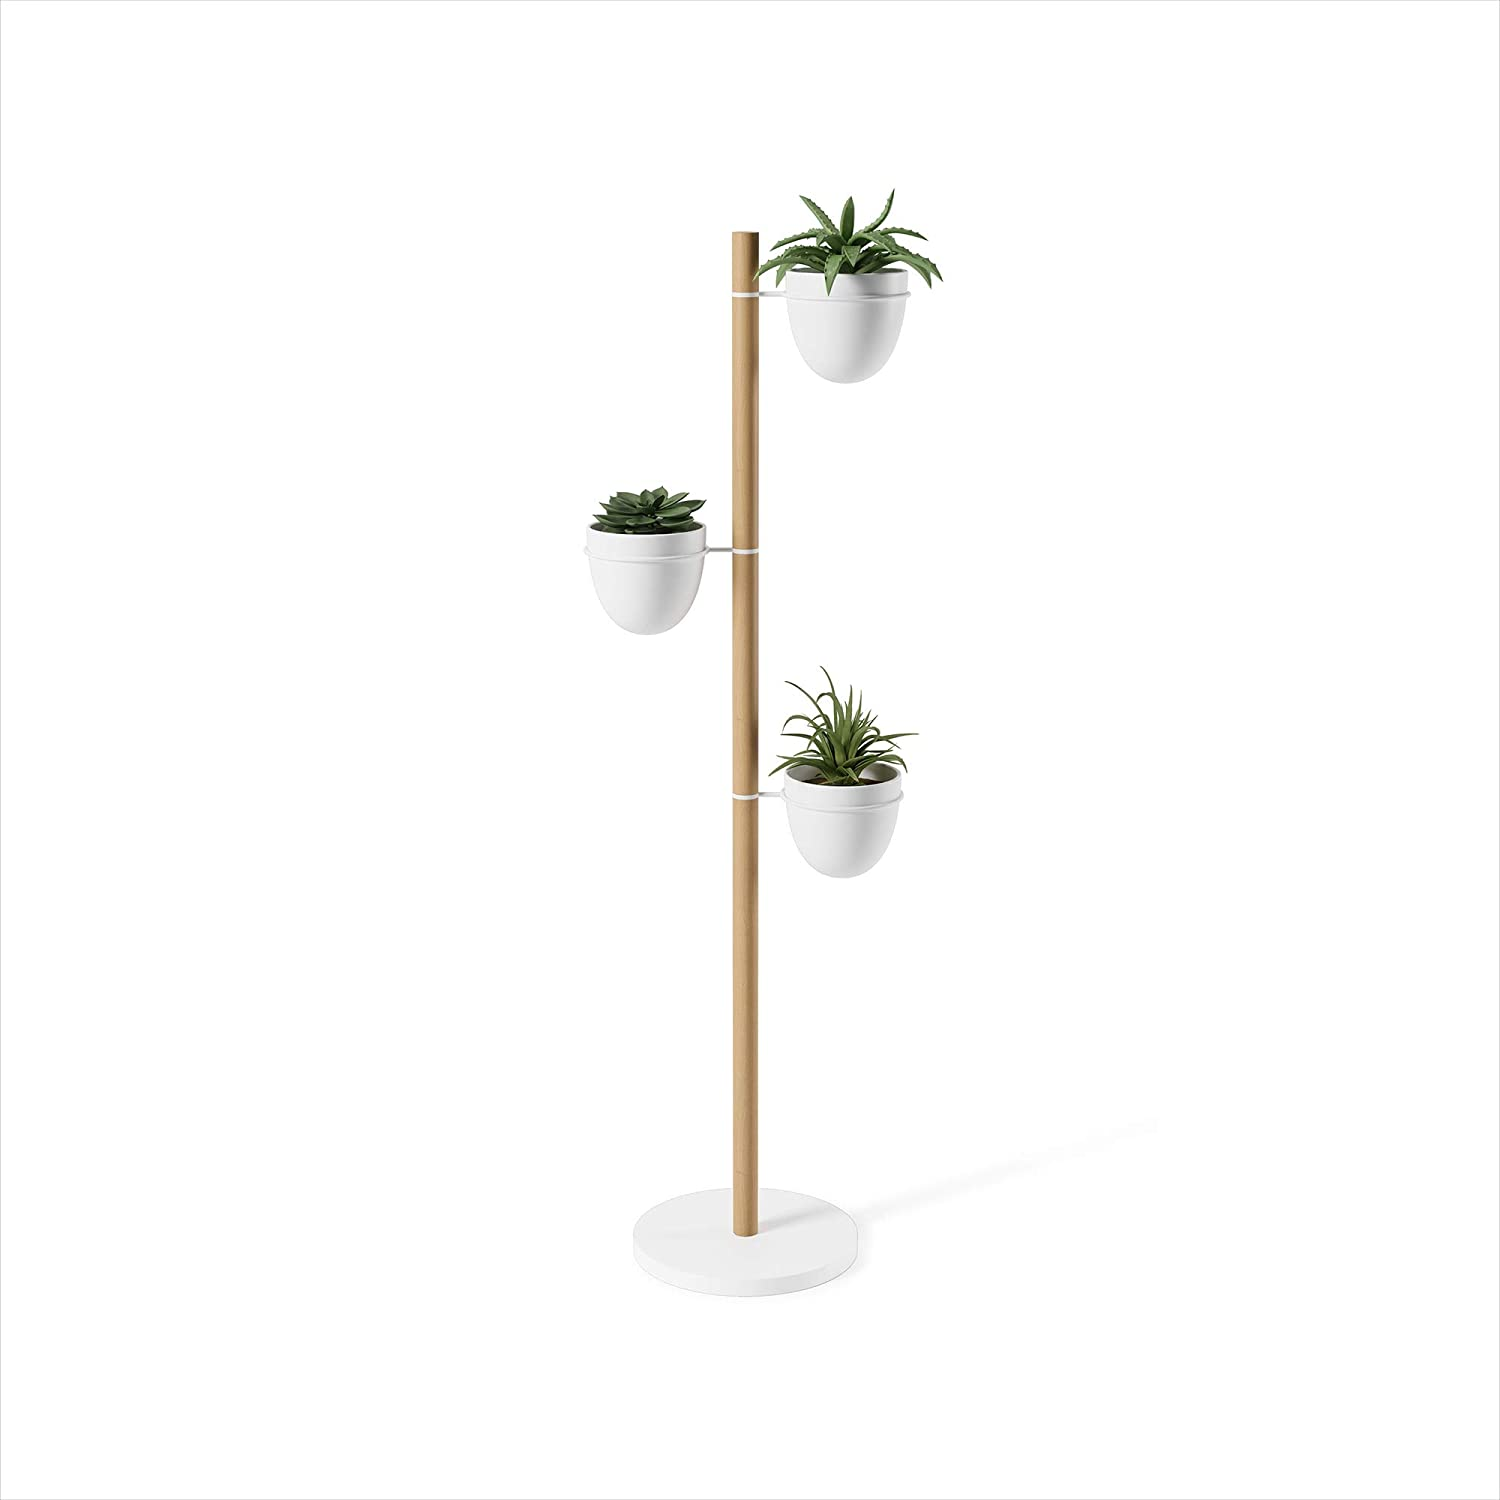 Umbra Floristand Planter, Freestanding Plant Storage, White/Natural